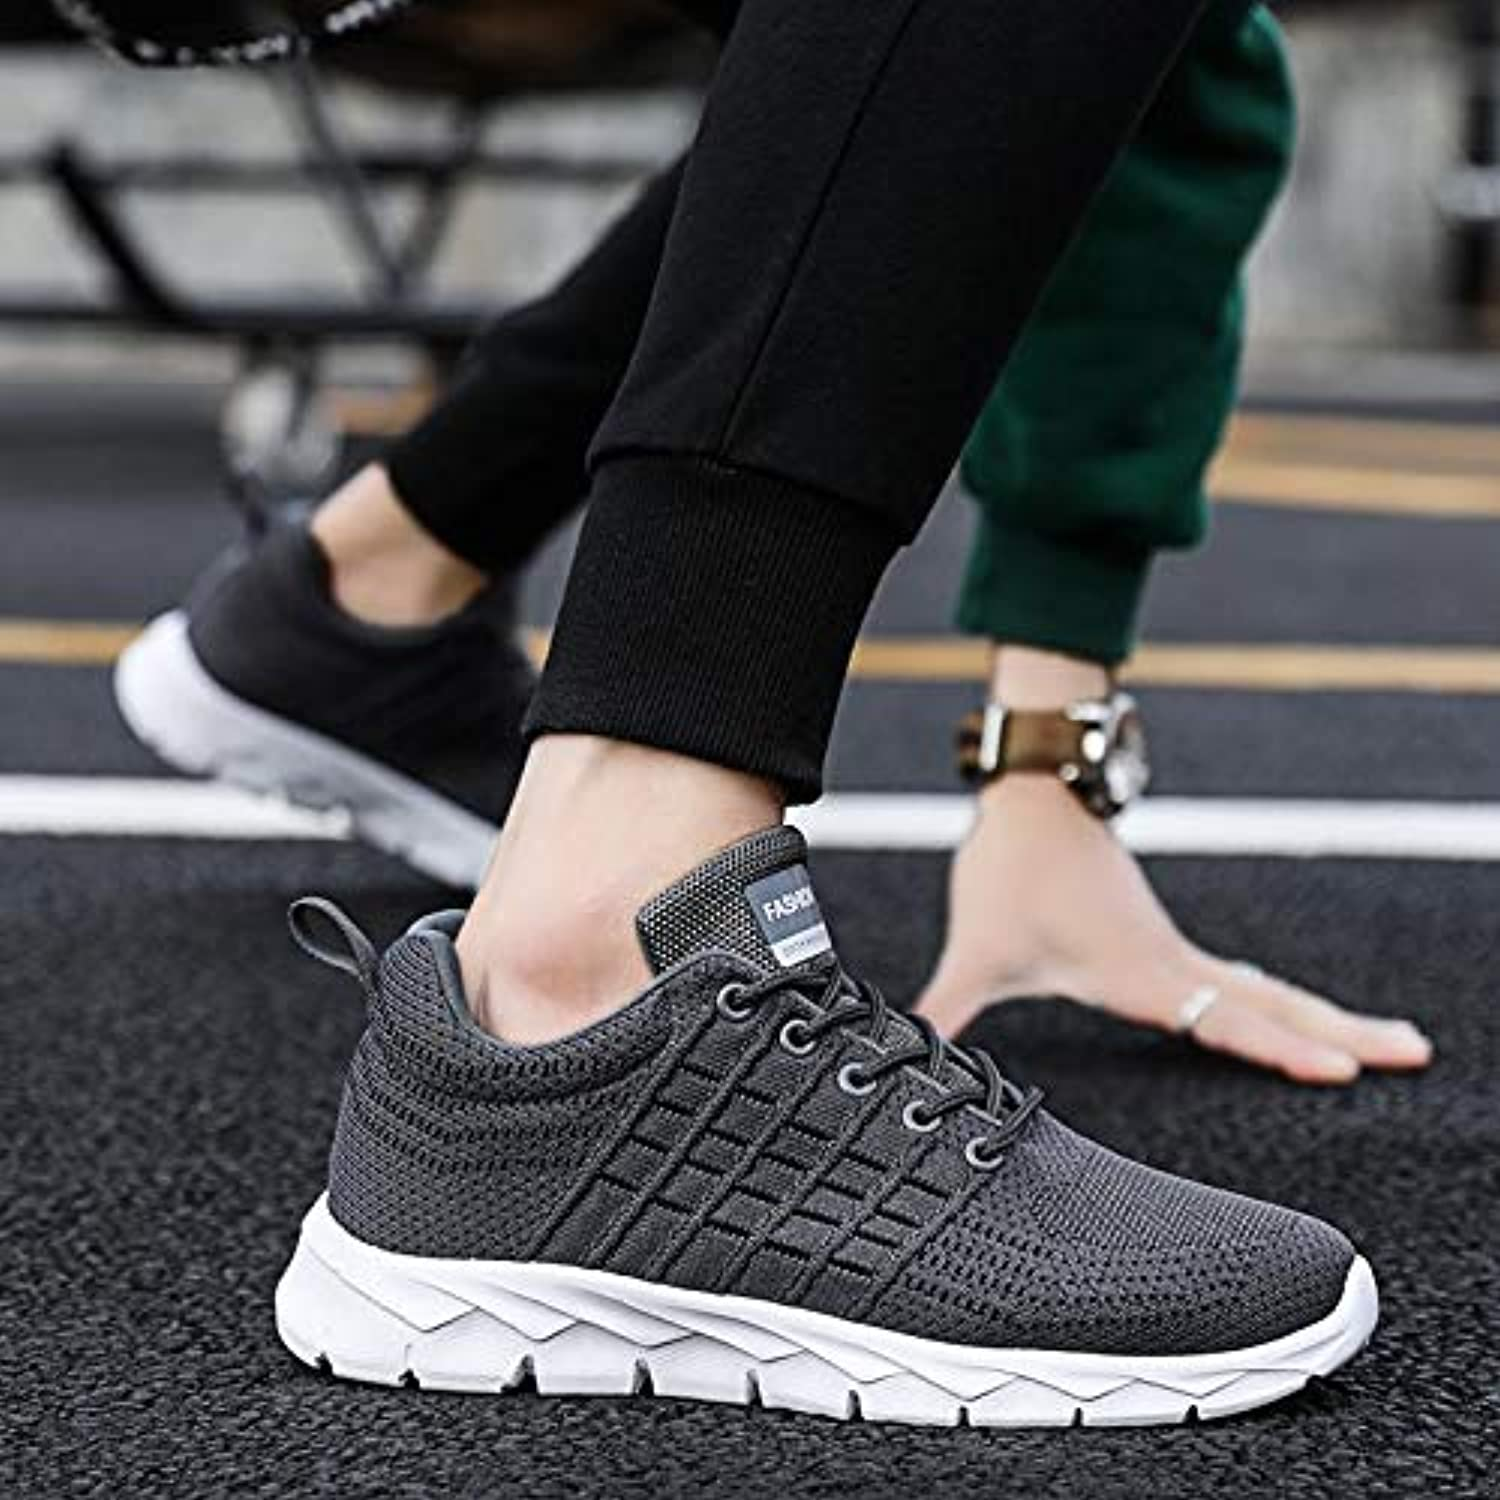 LOVDRAM Men's shoes New Casual shoes Sports Men'S shoes Spring And Summer Mesh shoes Breathable Casual shoes Men'S Sports shoes Running shoes Flying Woven Fashion shoes